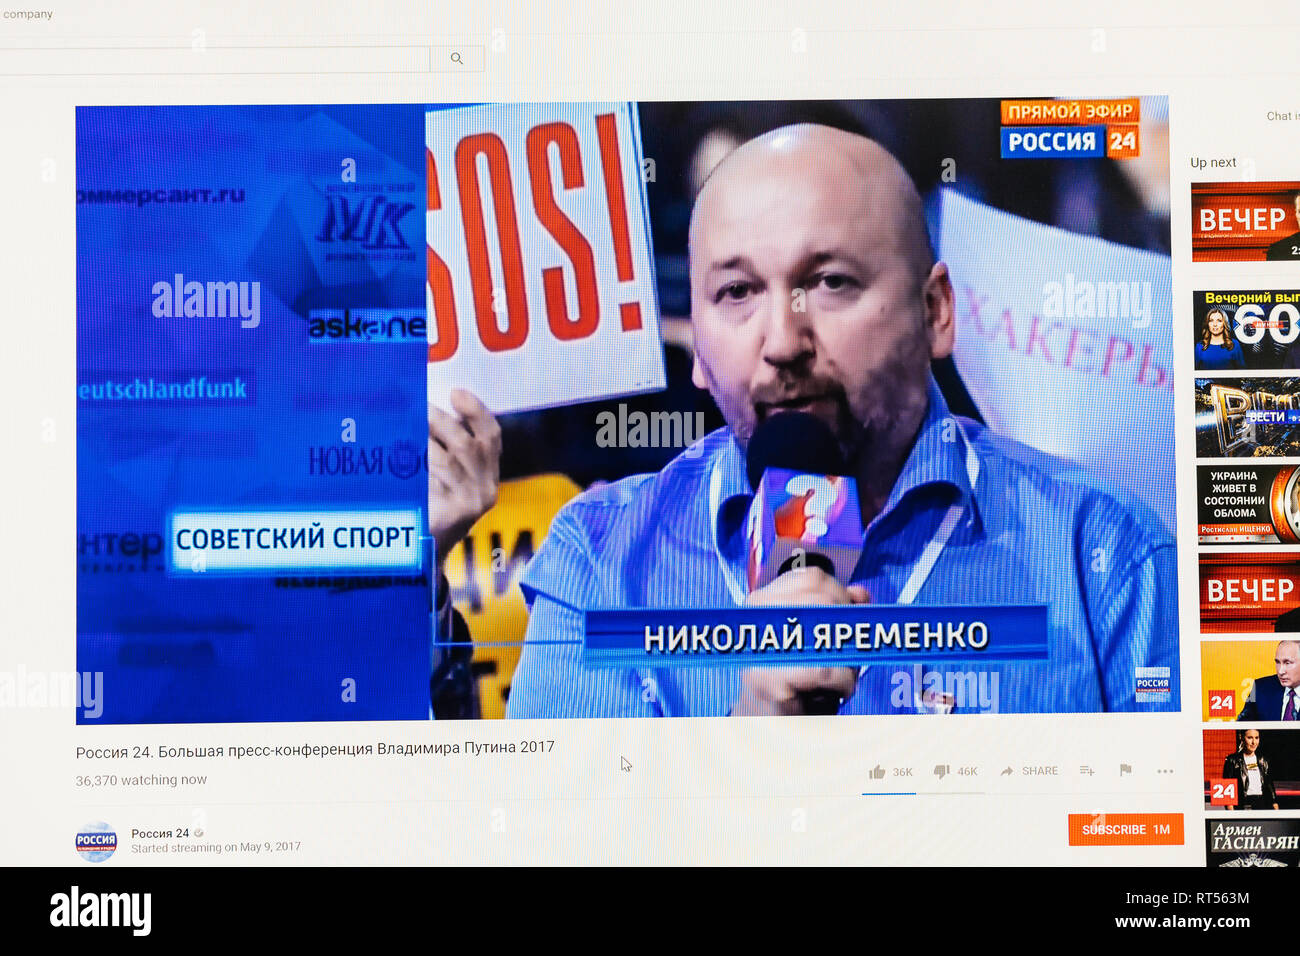 PARIS, FRANCE - DEC 14, 2017: Nikolai Yaremenko from Soviet Sport magazine poses question to Russian President Vladimir Putin give final media Q&A before March election - Stock Image